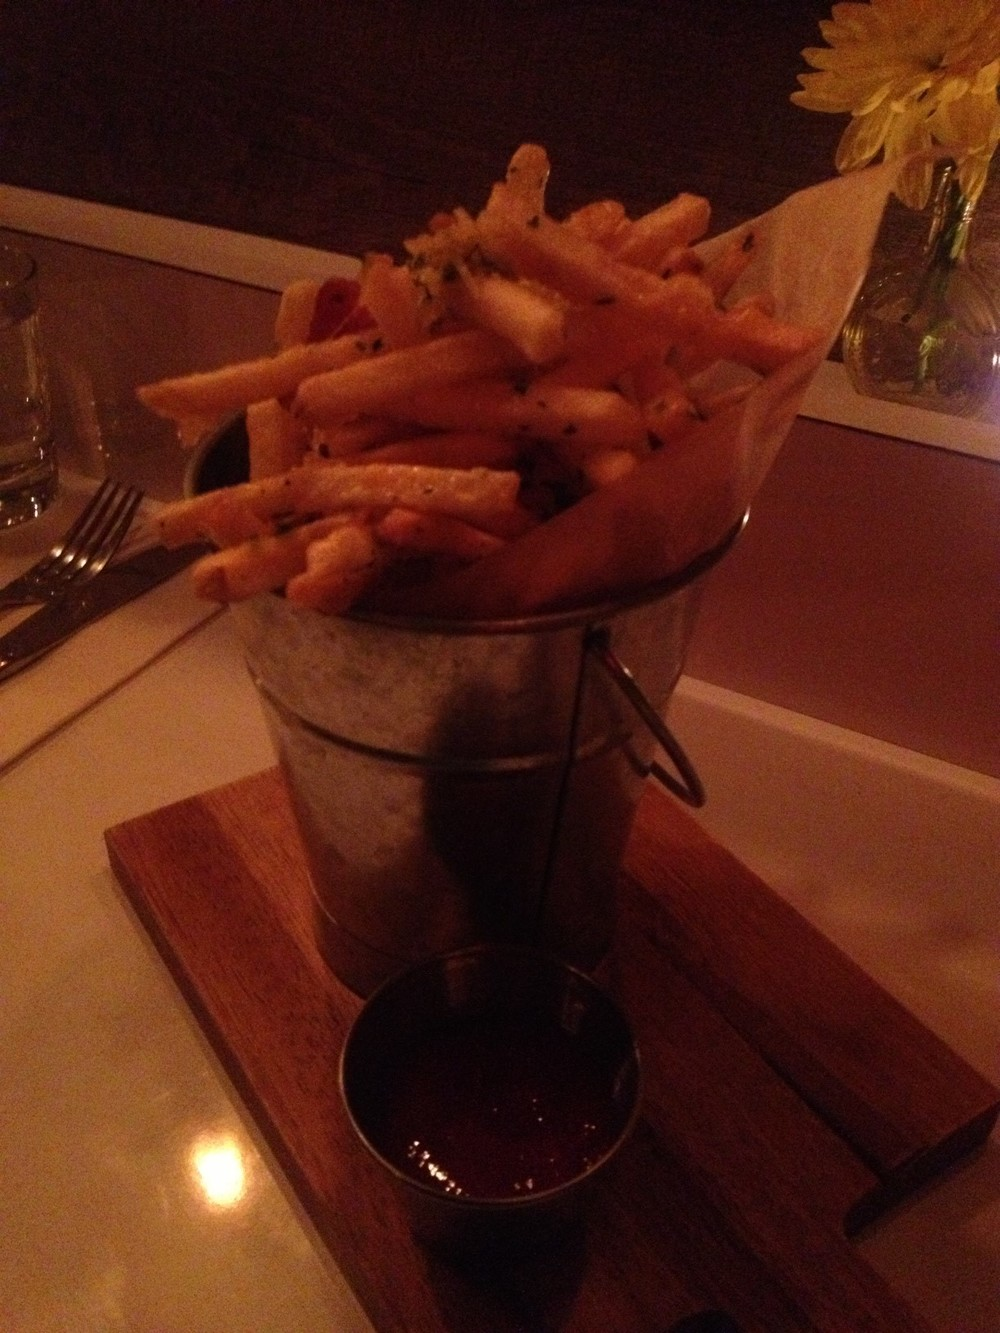 French Fries TOTALLY count as vegetables!